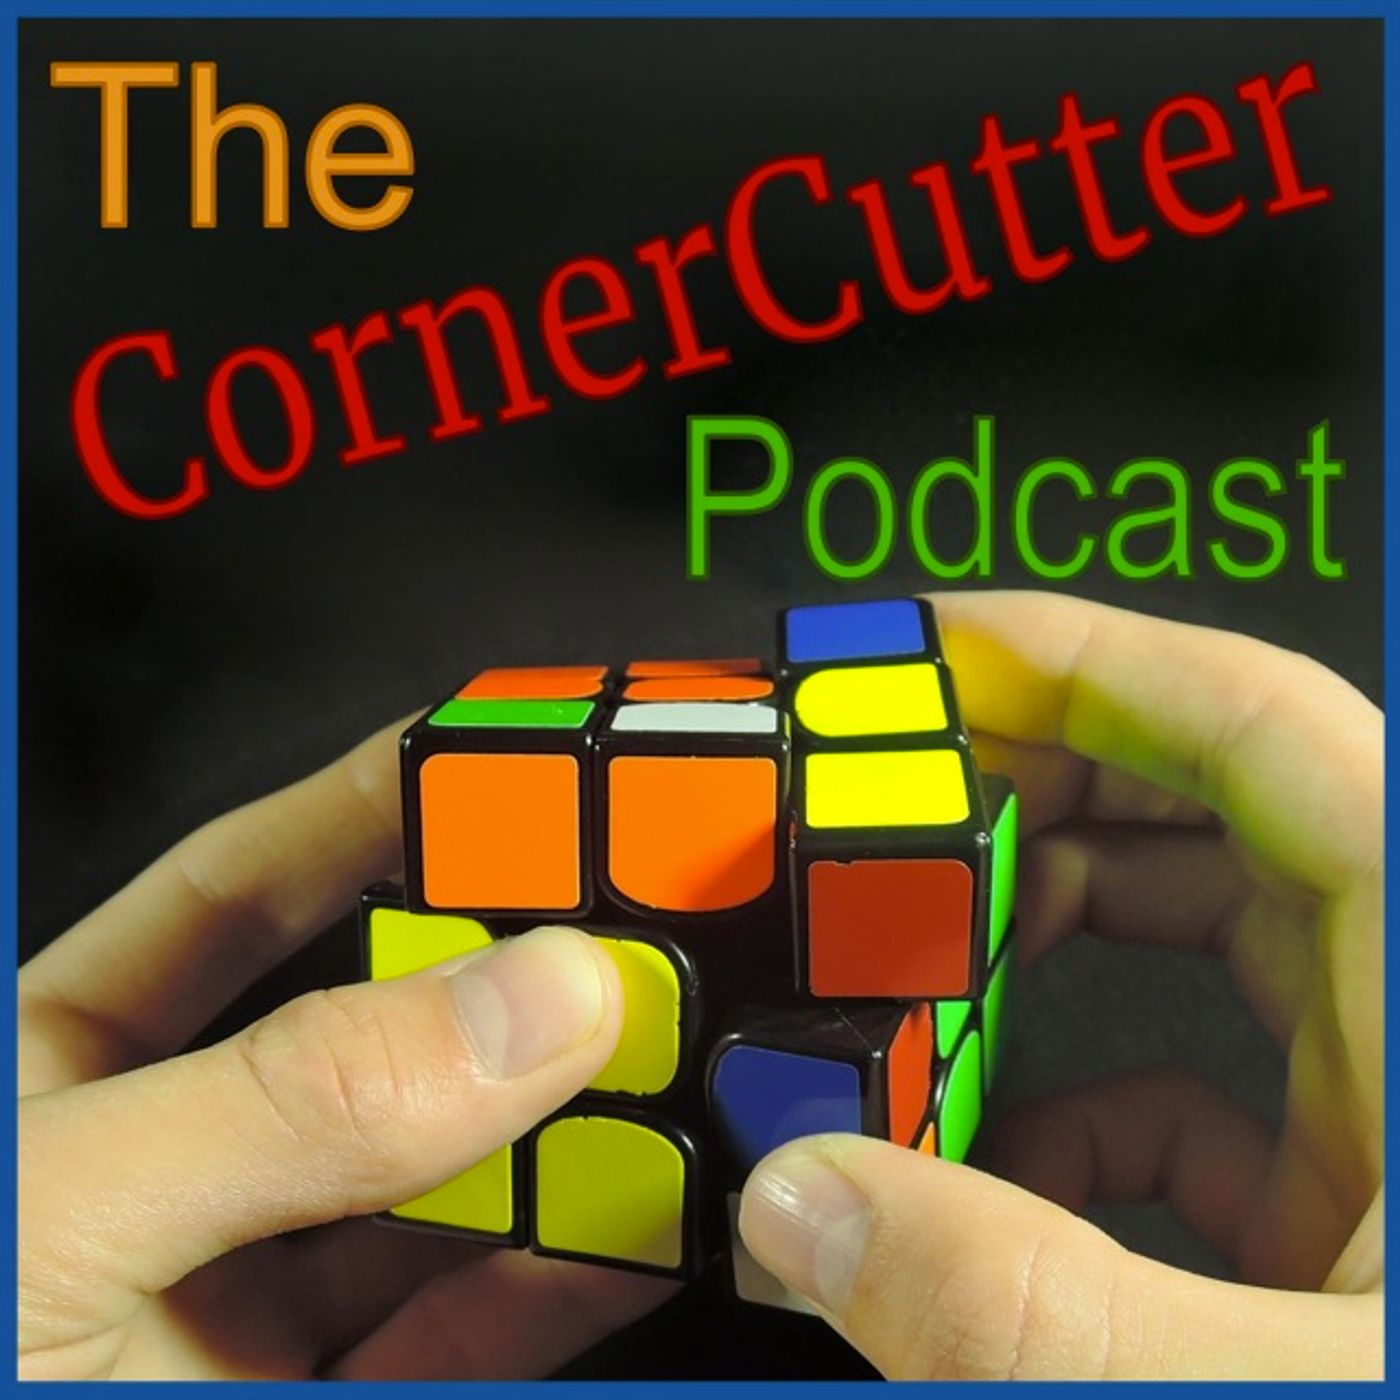 The CornerCutter Podcast - all about cubing and how to improve | Rubik's Cube | SpeedCubing